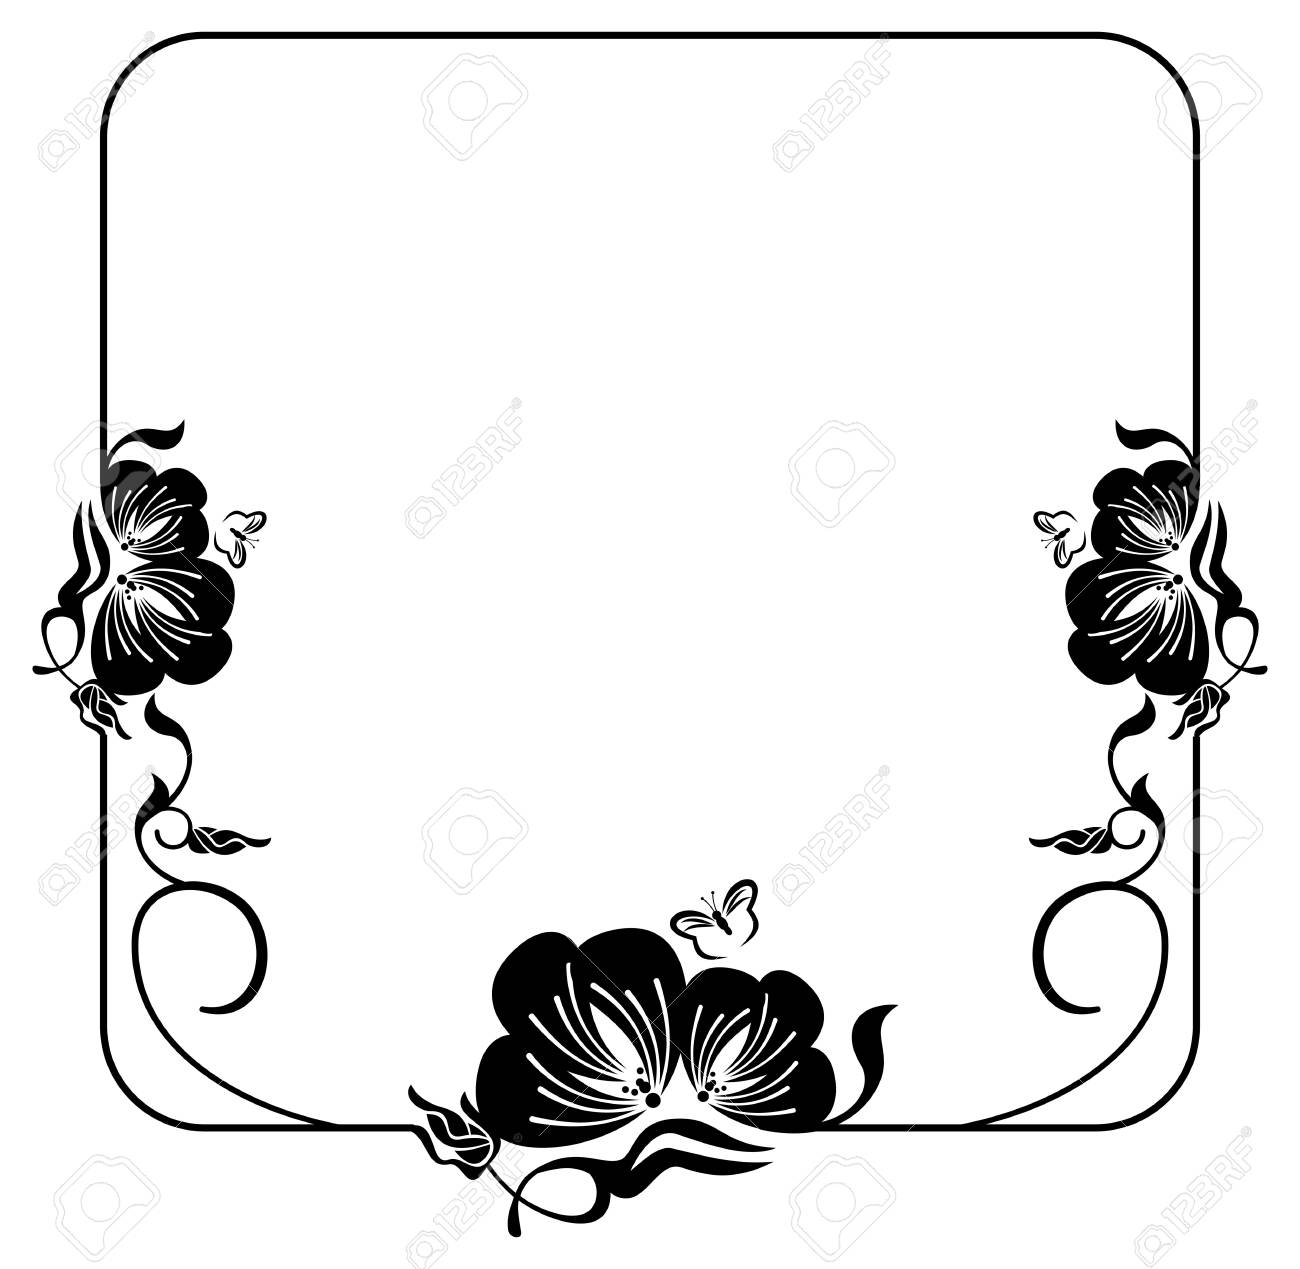 Square silhouette flower frame simple black and white frame square silhouette flower frame simple black and white frame with abstract flowers stock vector mightylinksfo Choice Image